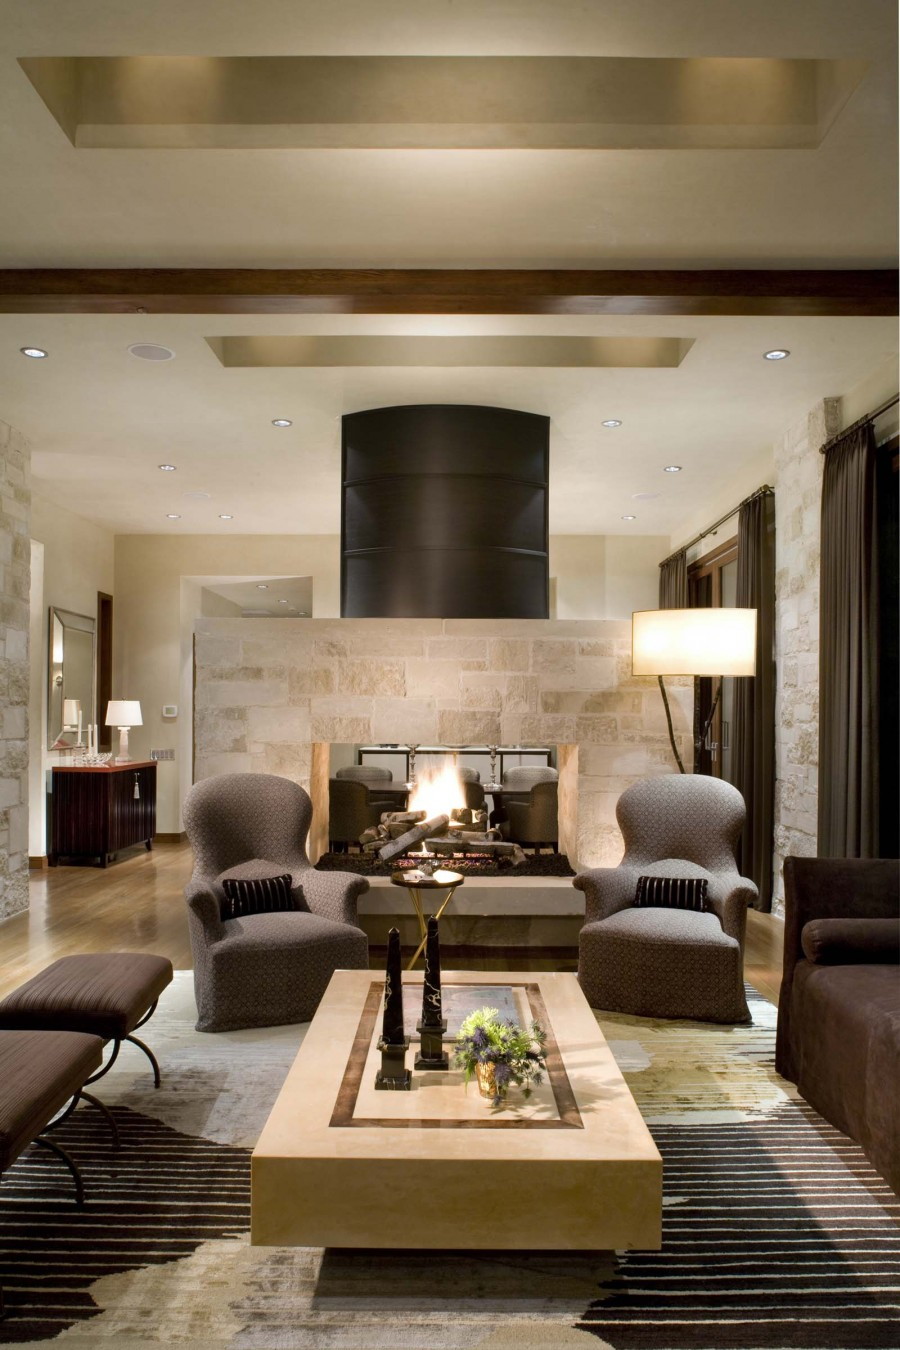 16 fabulous earth tones living room designs decoholic for Lounge room design ideas